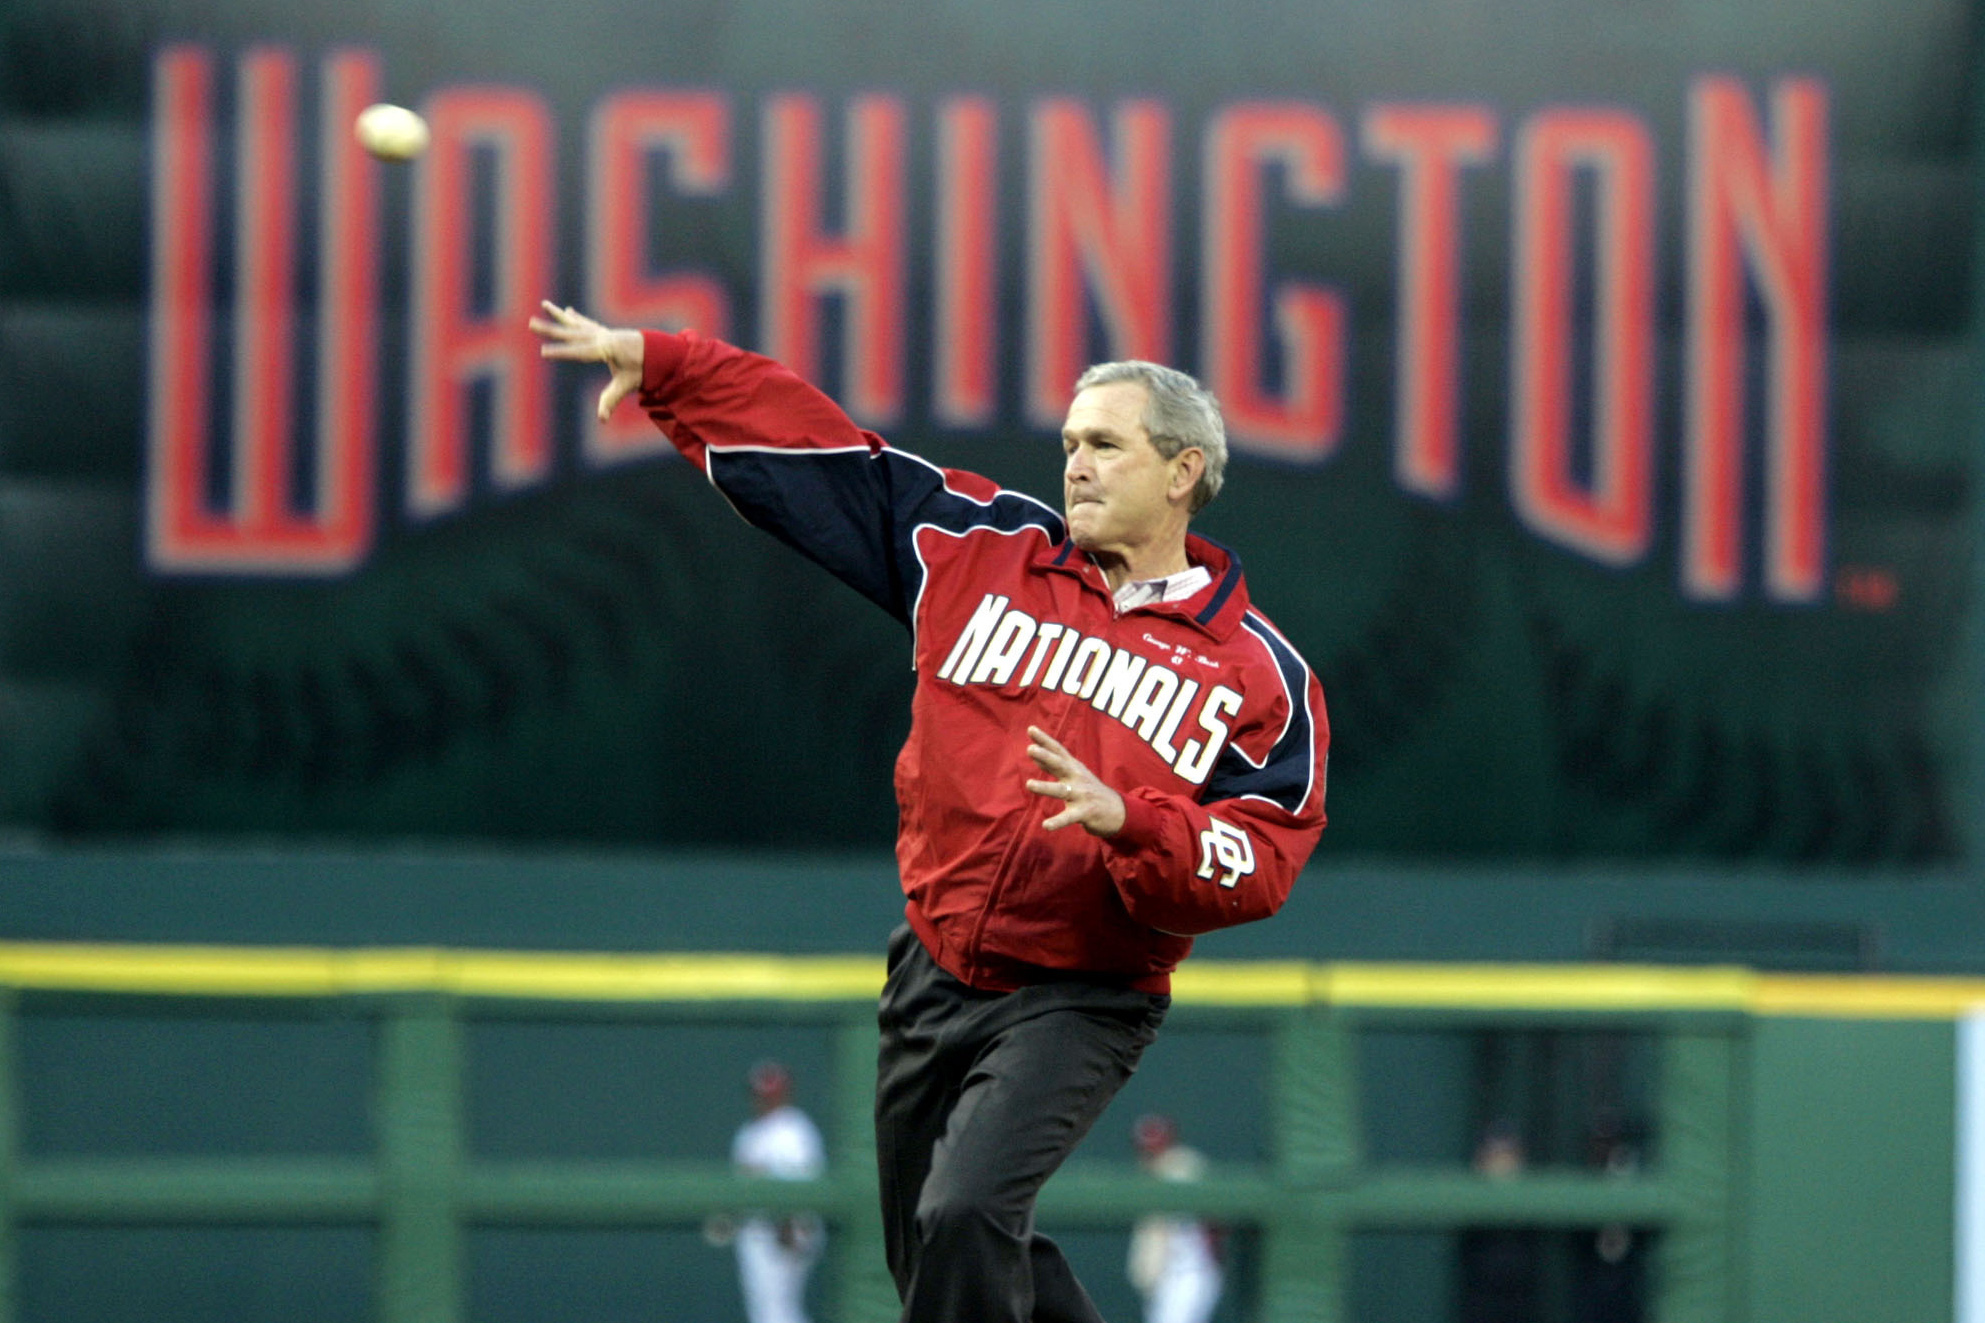 baseball, first pitch, president, opening day